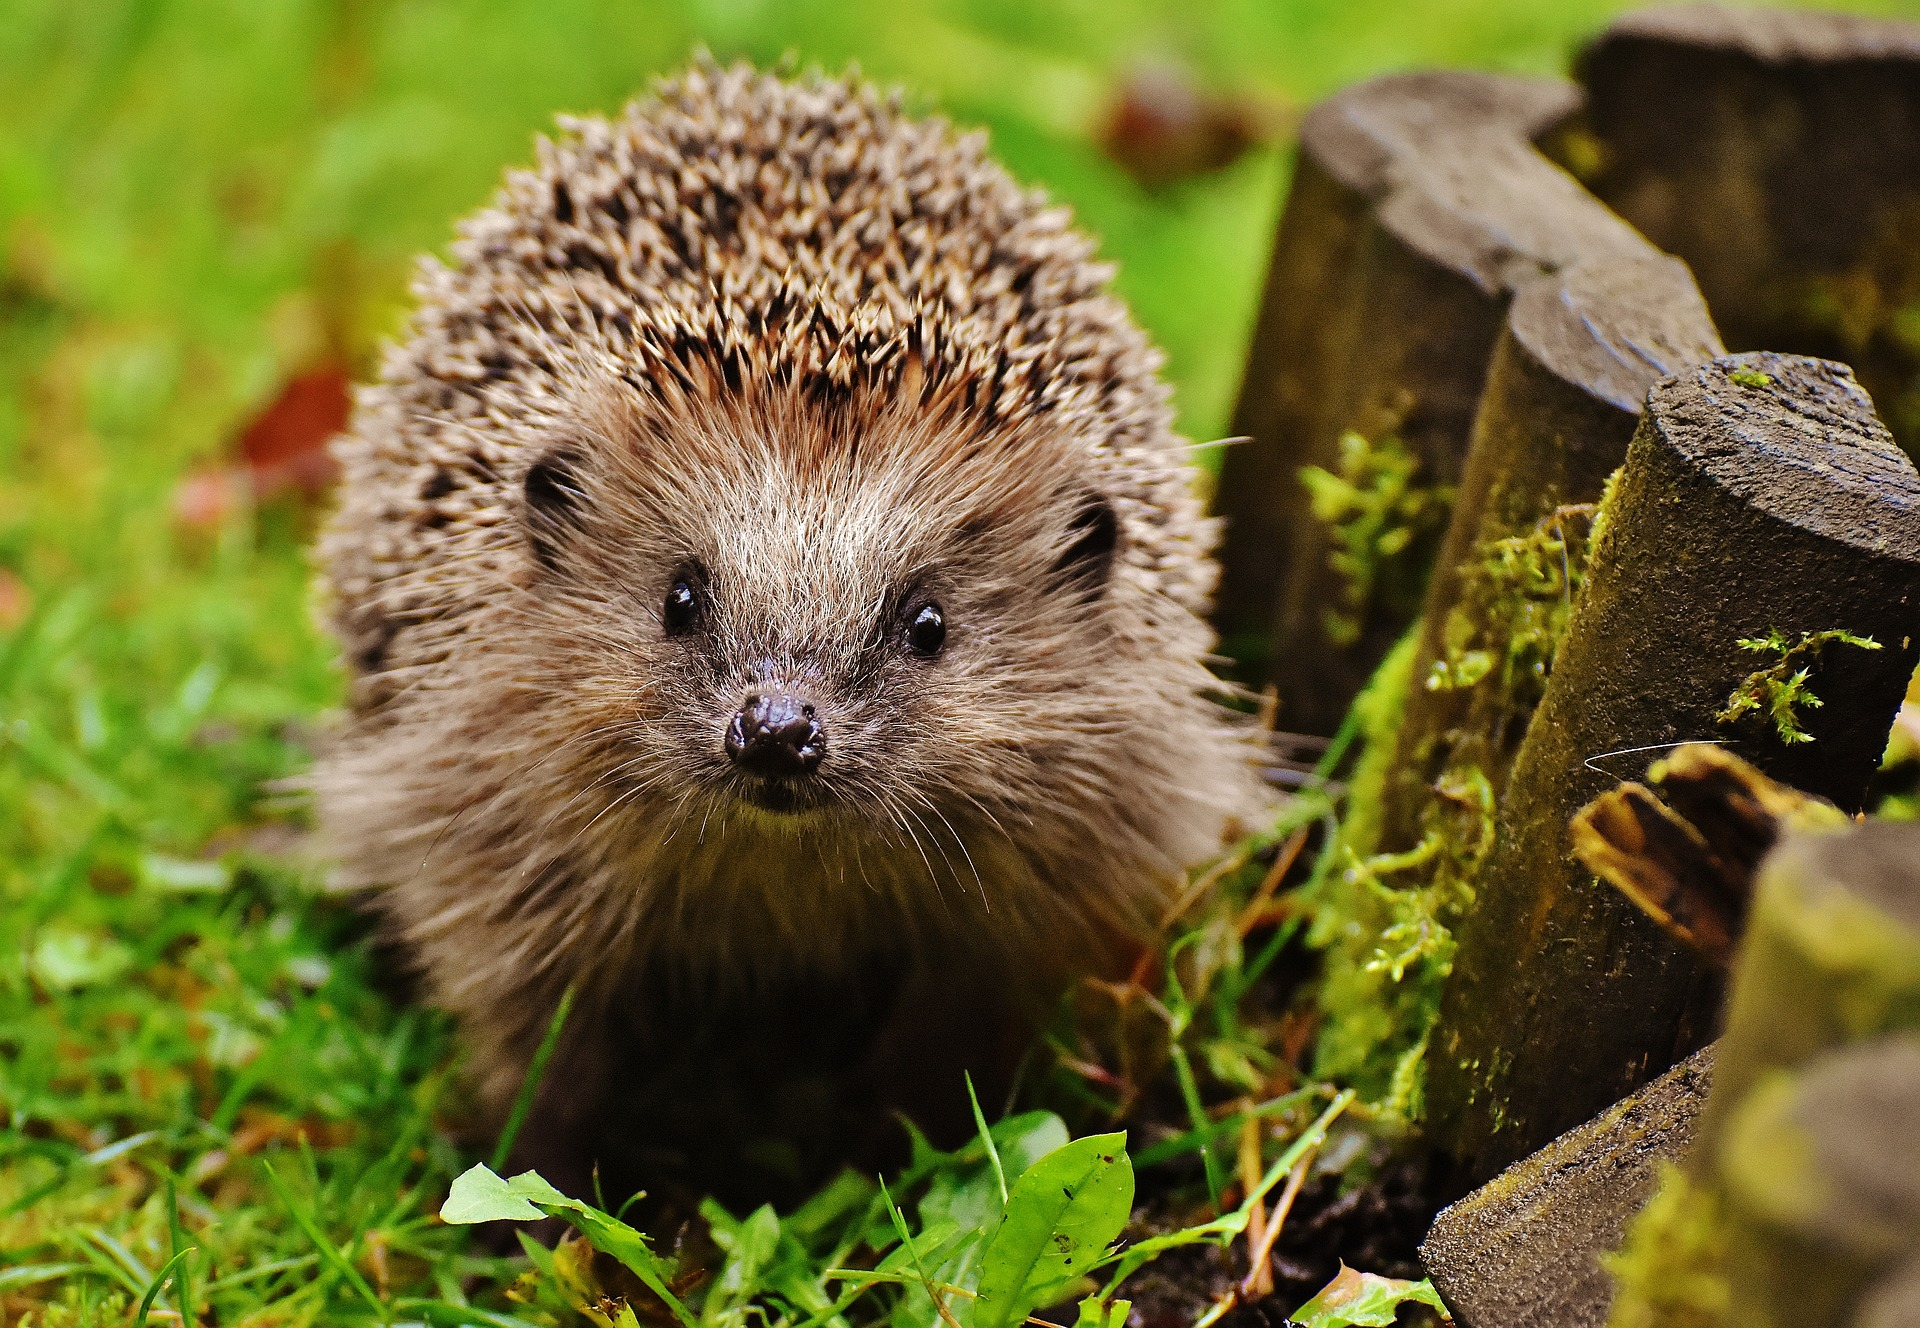 hedgehog-child-1759027_1920